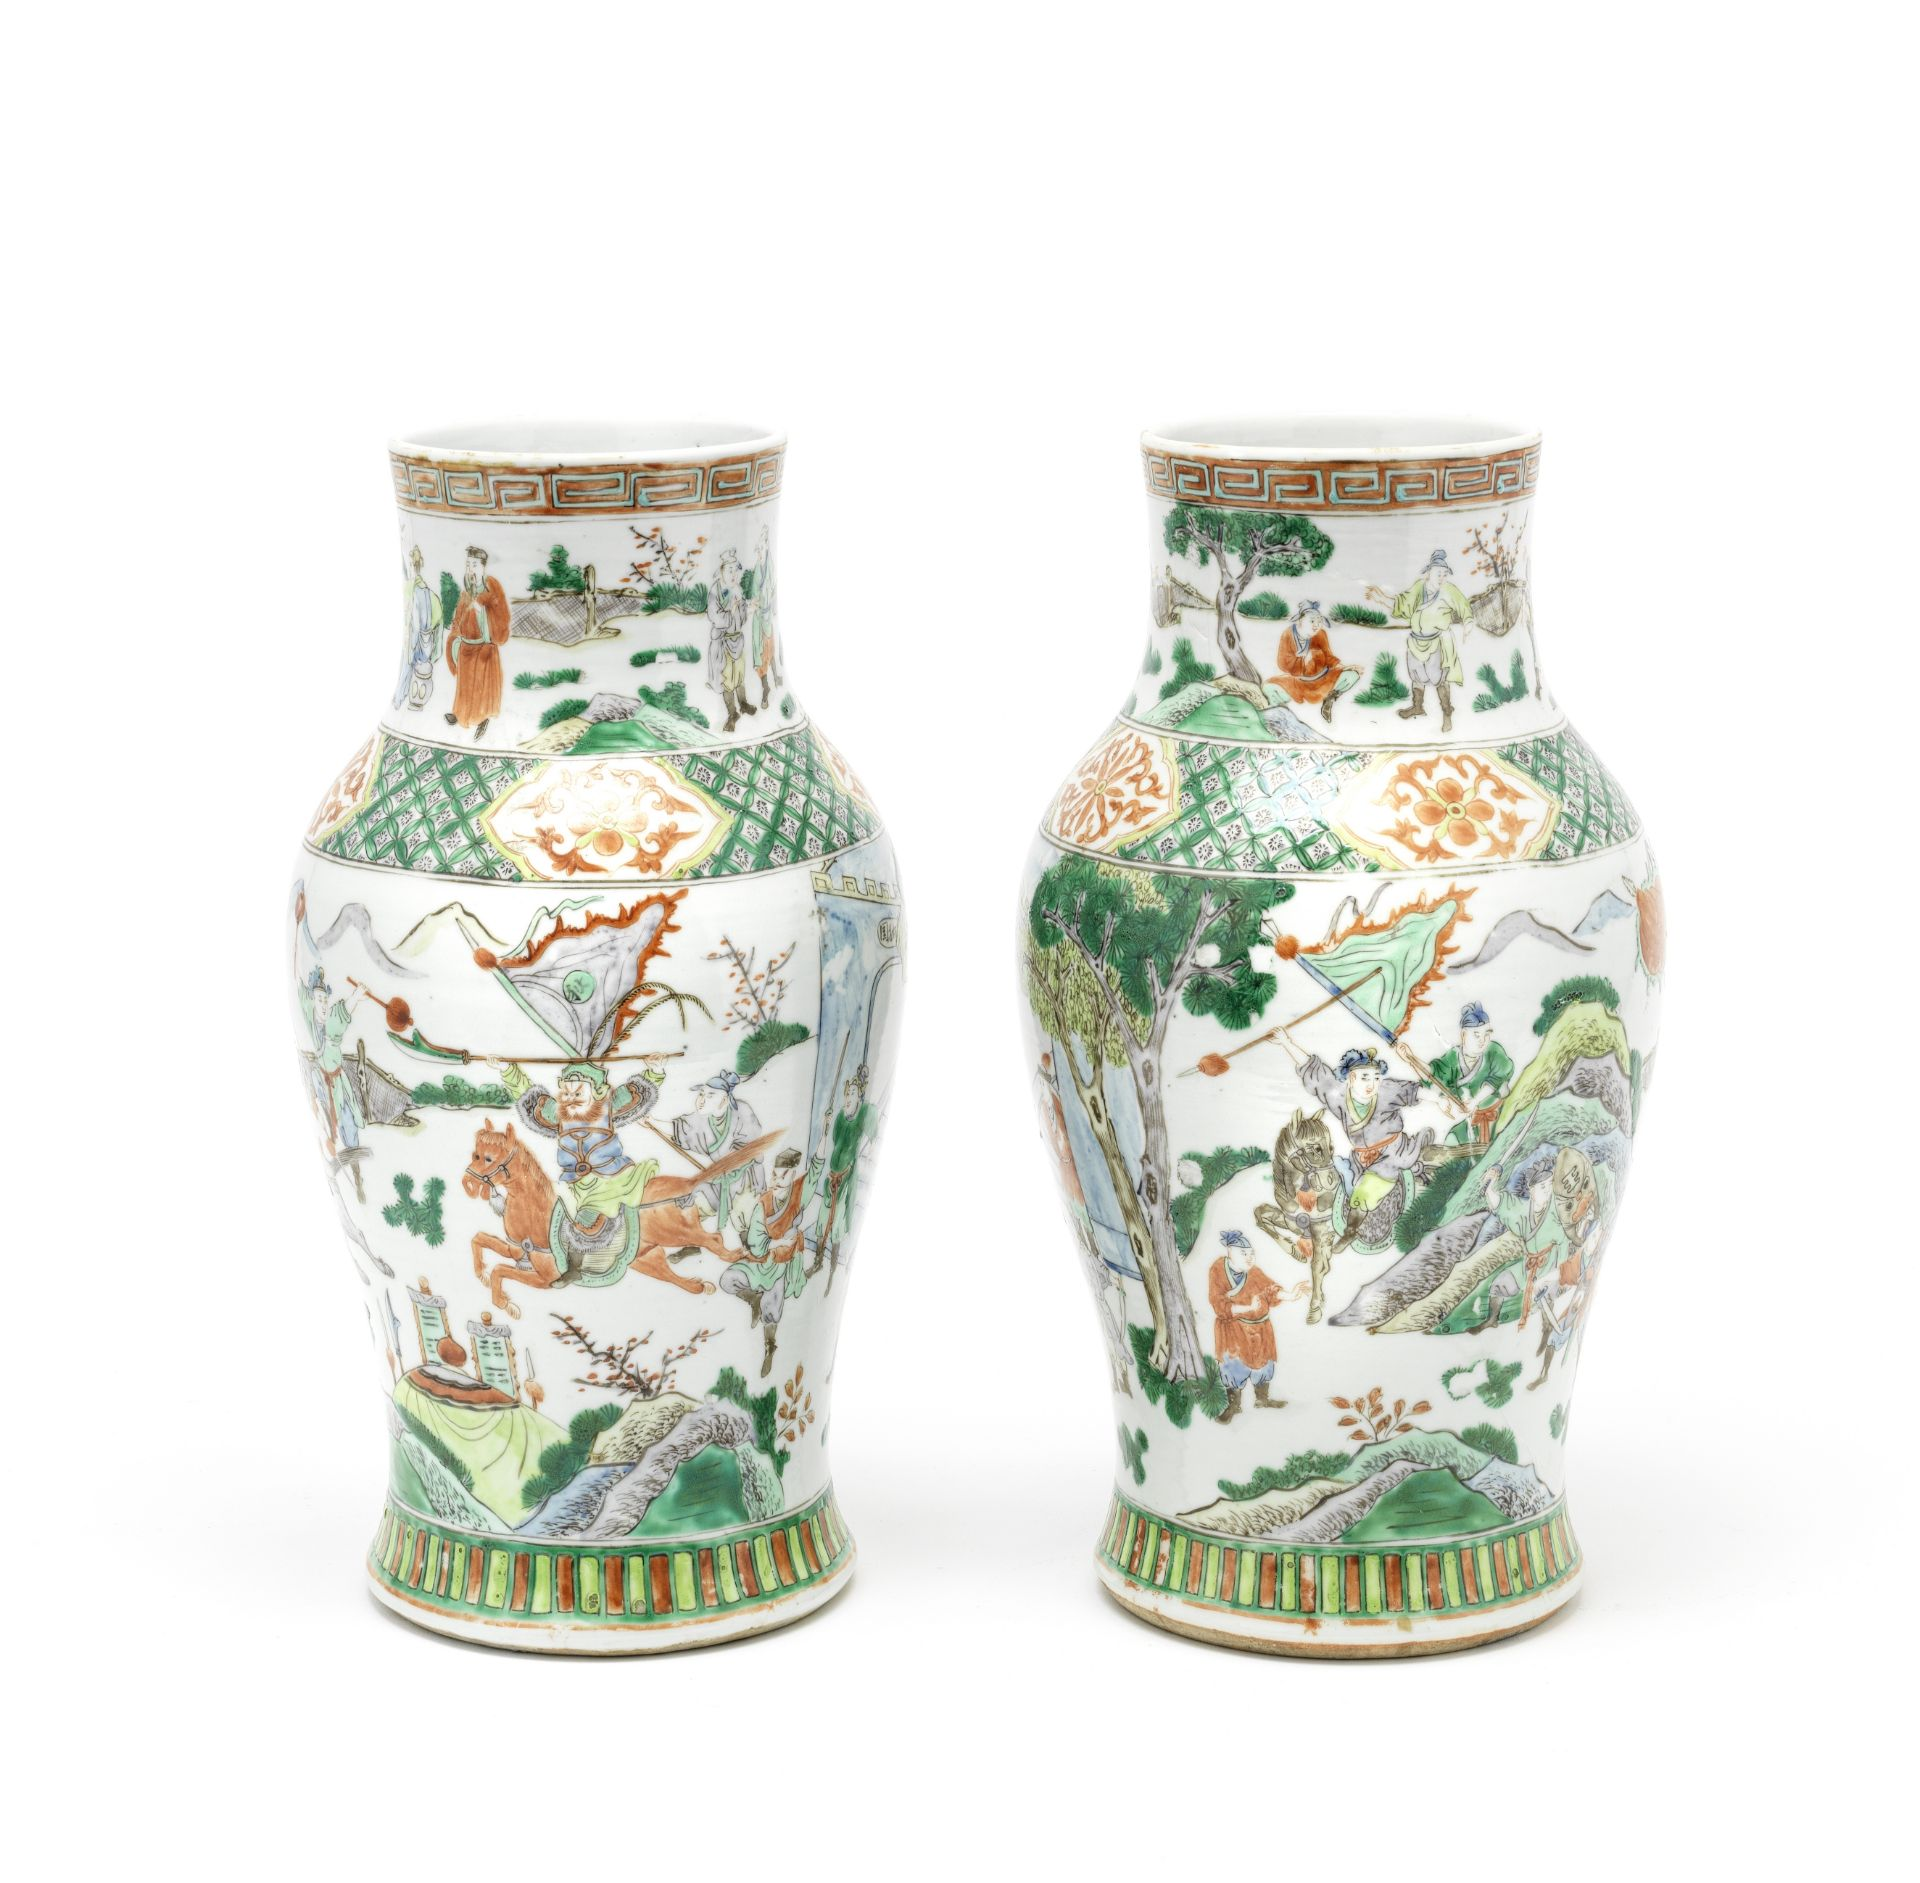 Los 224 - A pair of 19th Century Chinese famille verte vases (2)